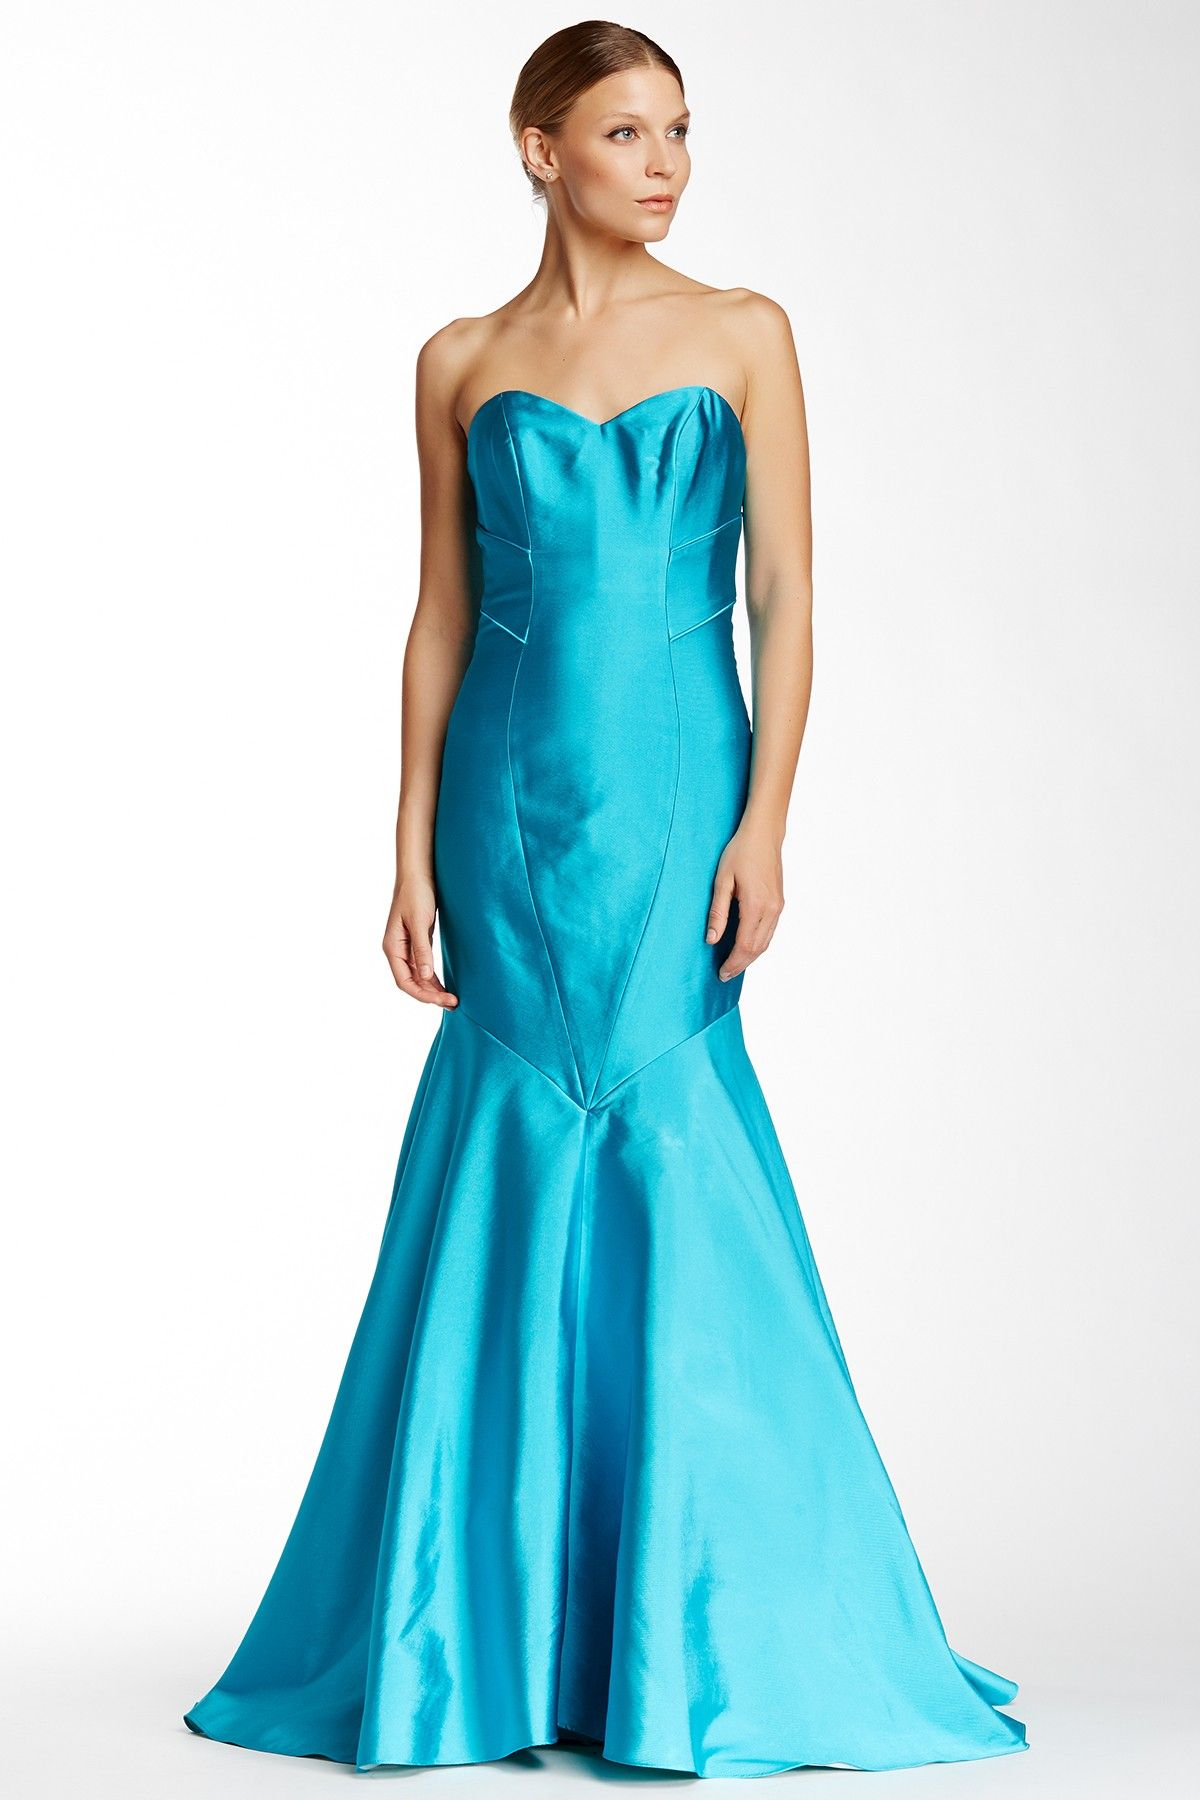 Sweetheart Evening Dress by Theia on @HauteLook | Unconventional ...